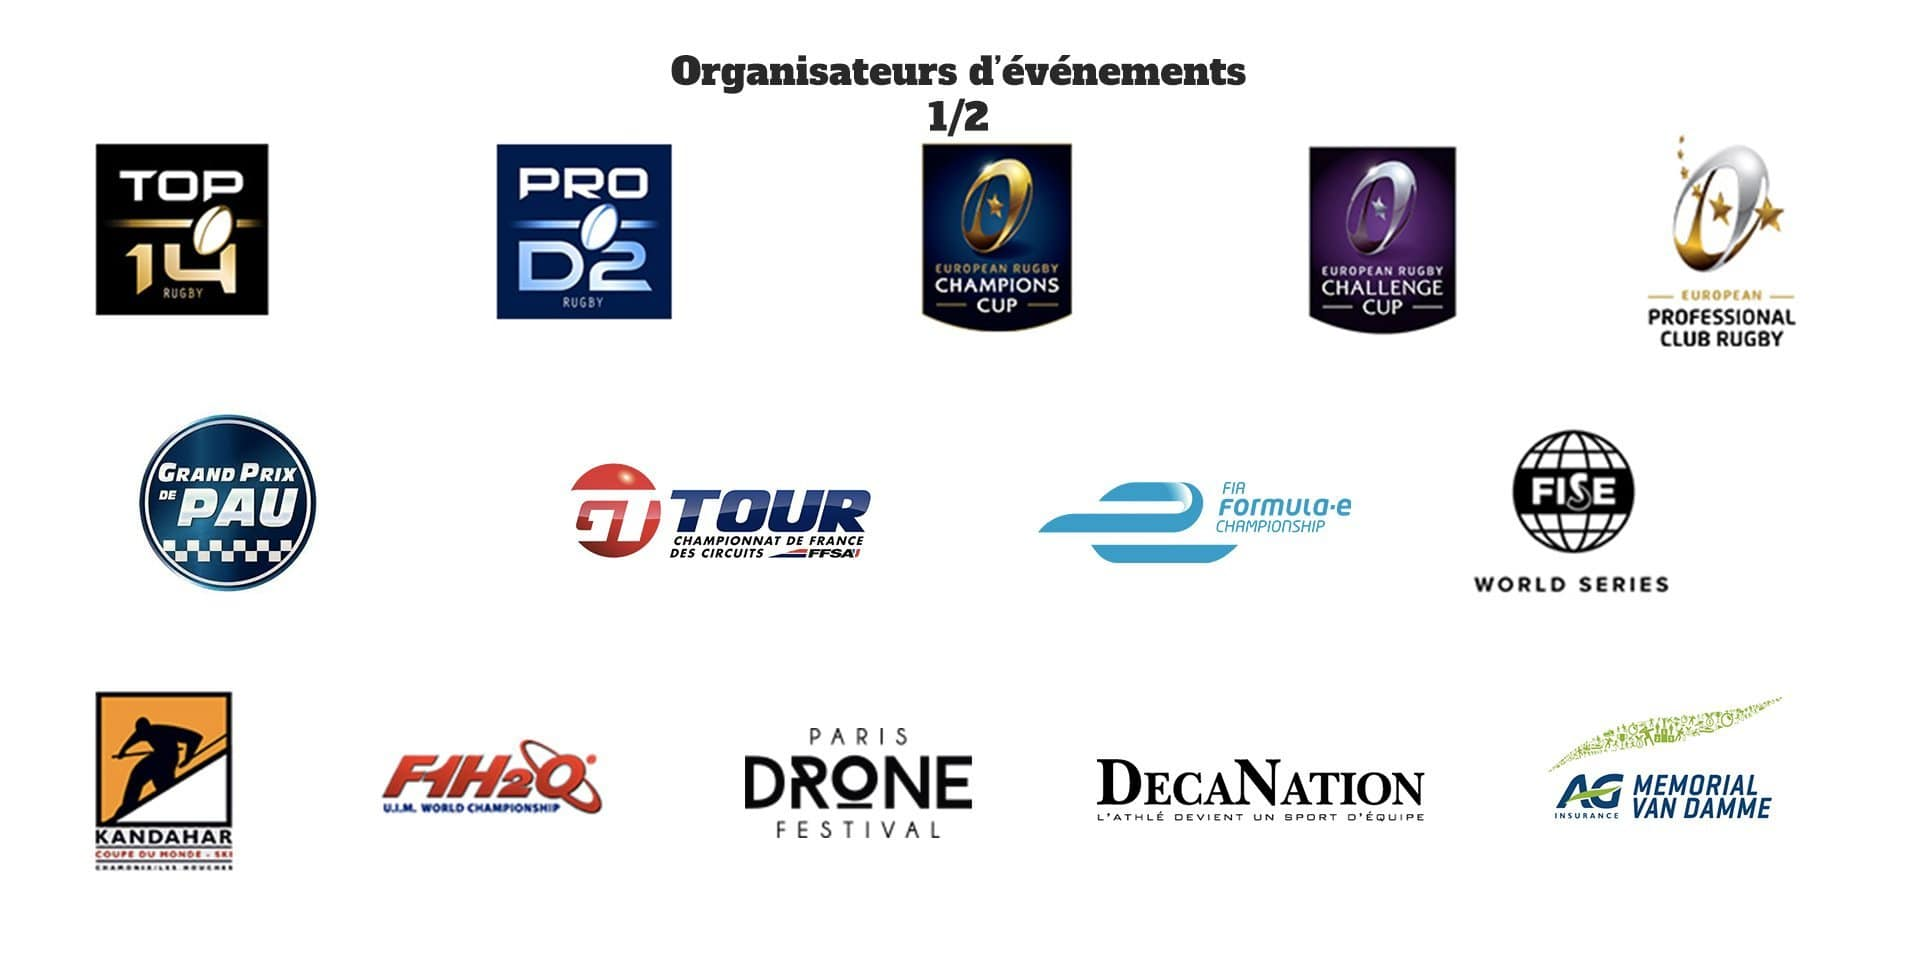 banniere referencereference organisateur evenement PAGE